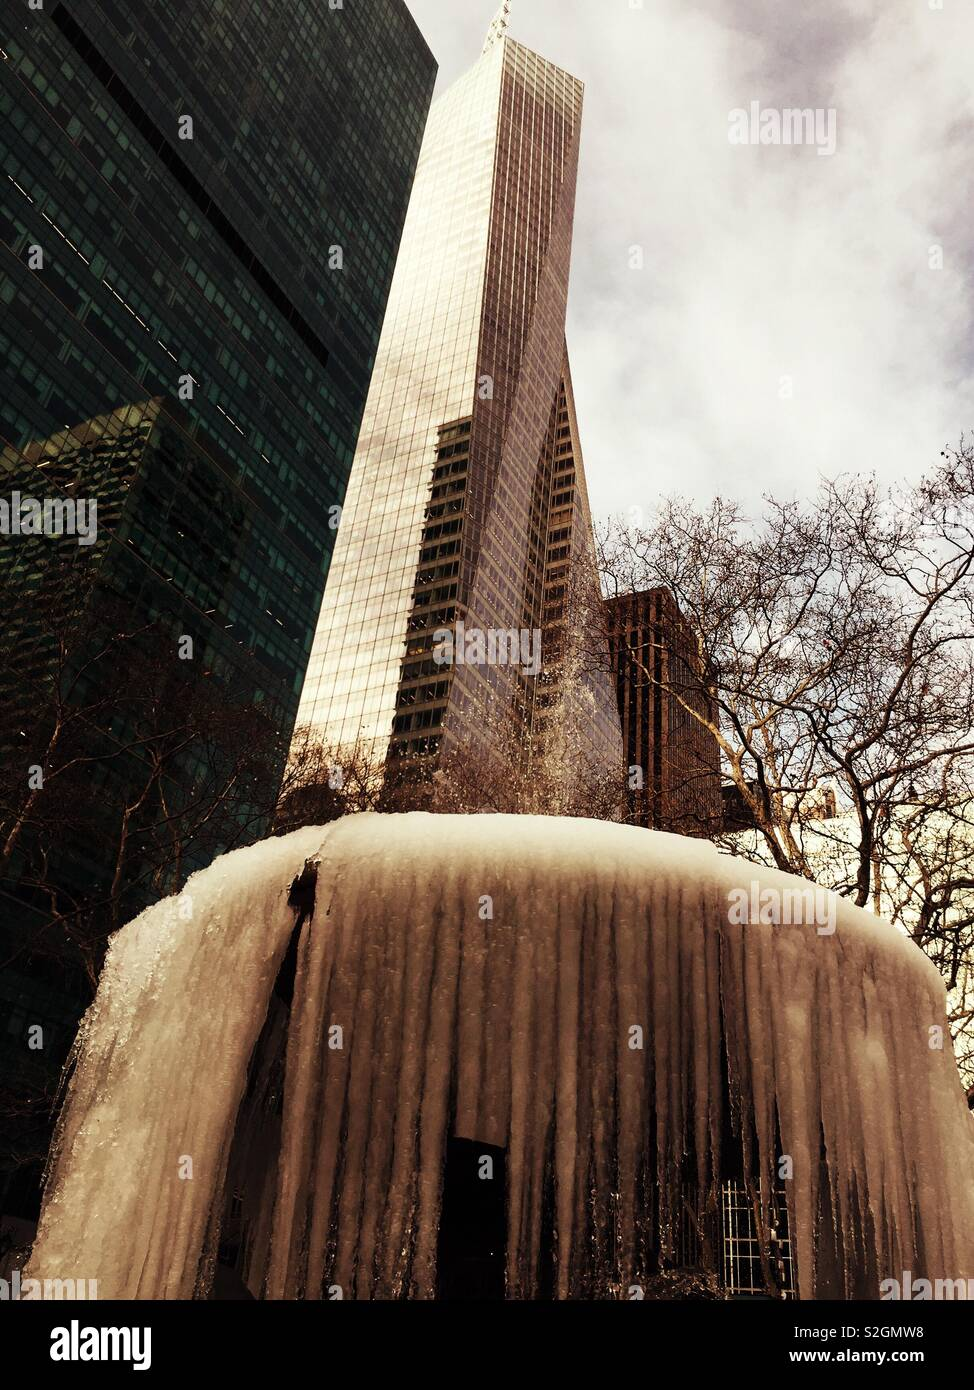 Icicles hanging from the Josephine Shaub Lowell memorial fountain after a cold snap in Bryant Park, NYC, USA - Stock Image